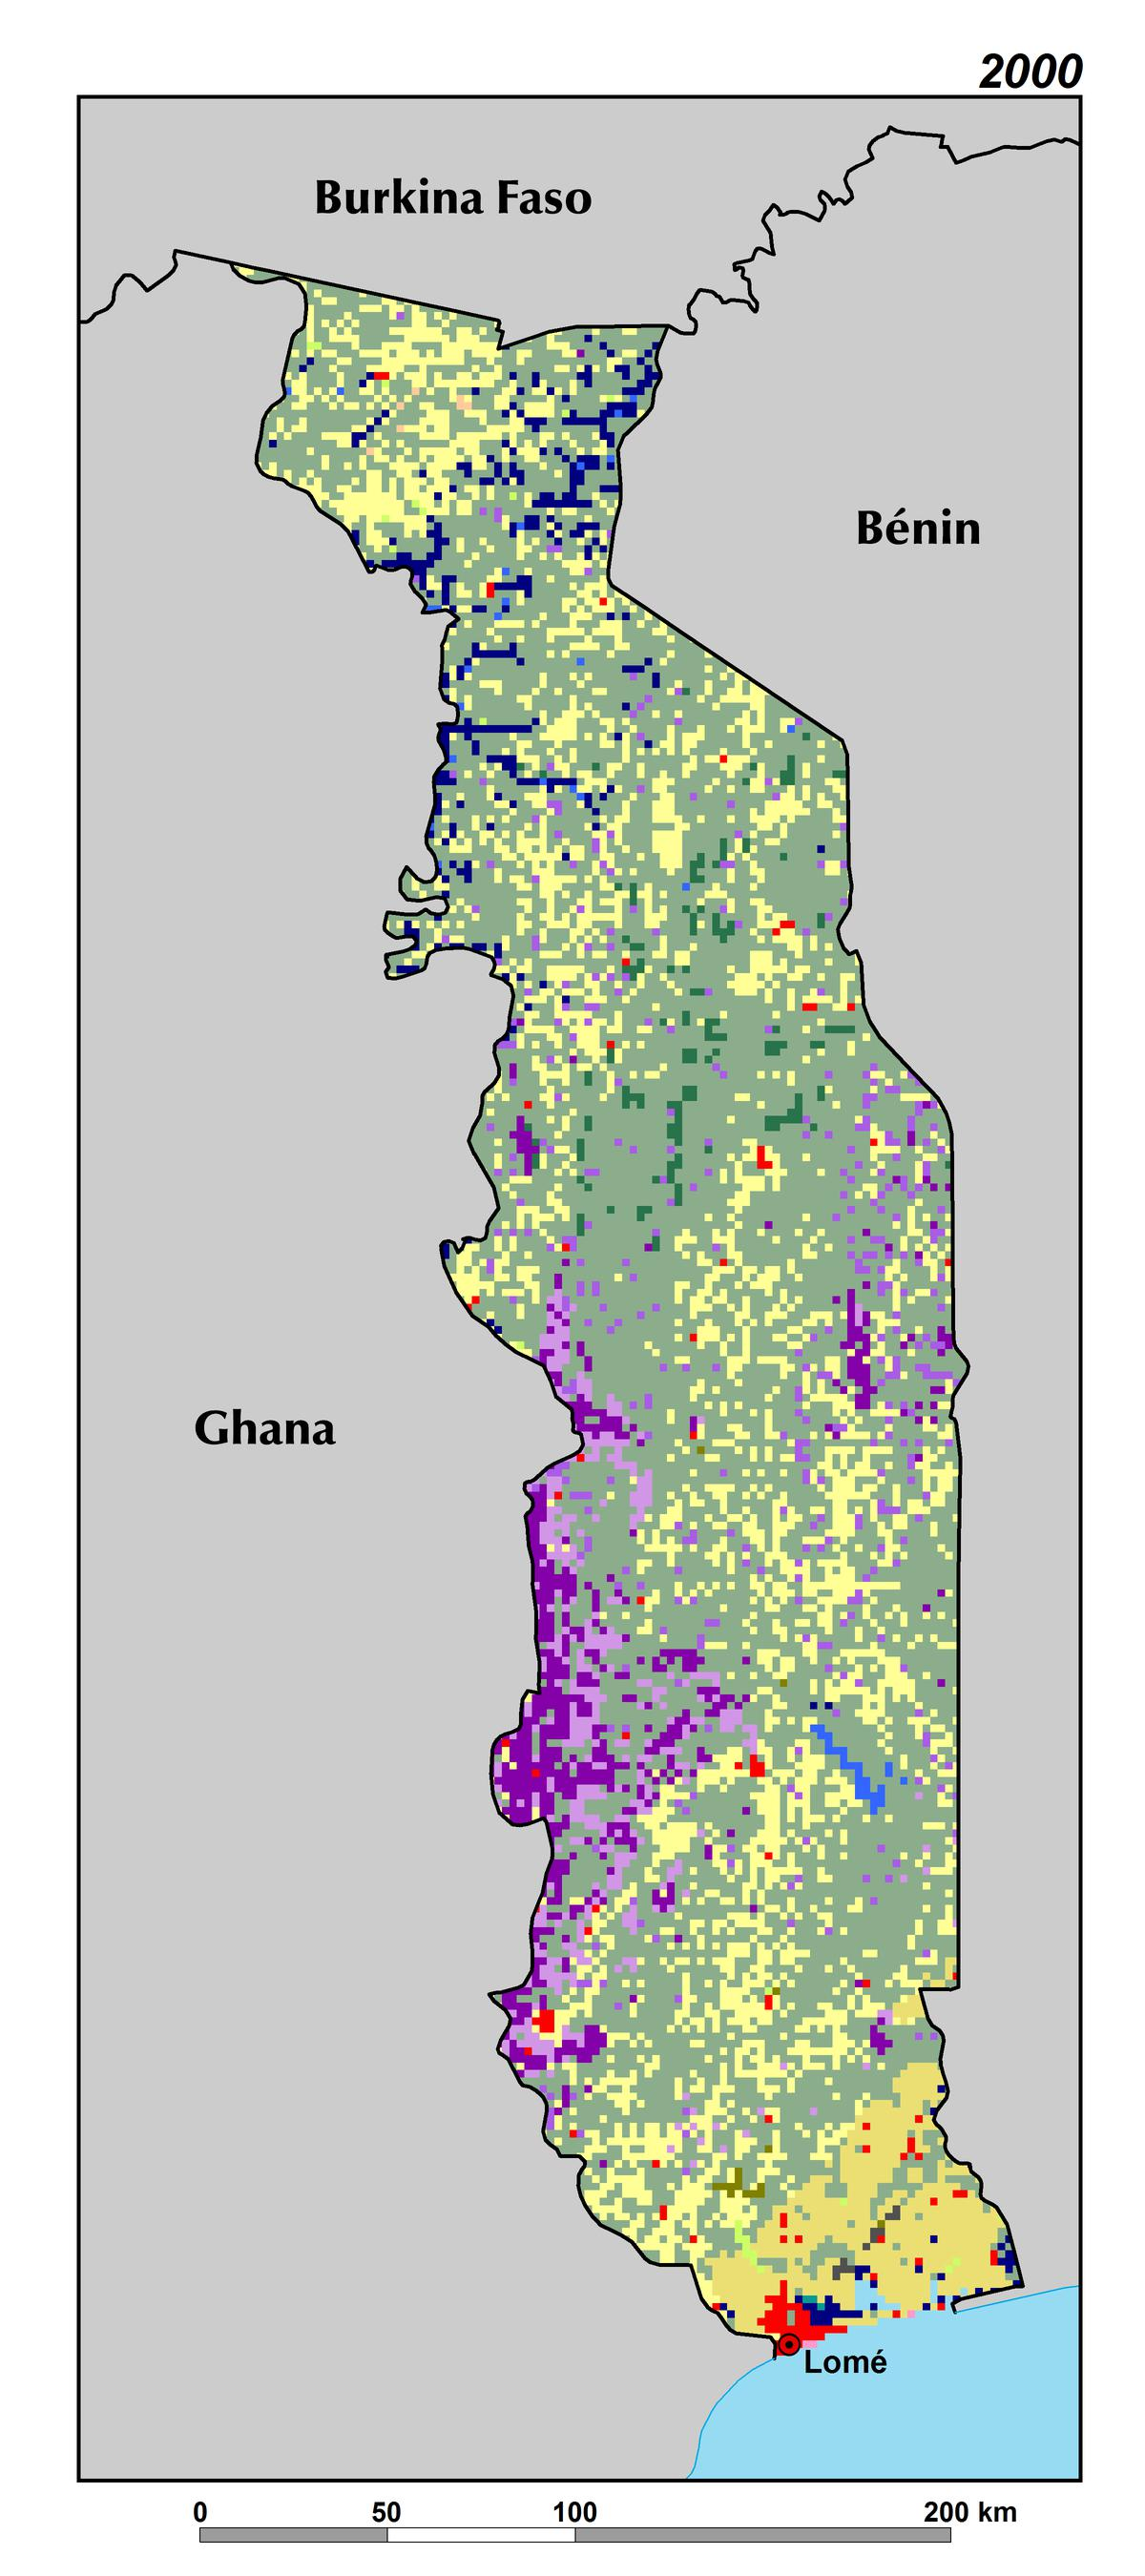 map togo west africa Land Use Land Cover And Trends In Togo West Africa map togo west africa